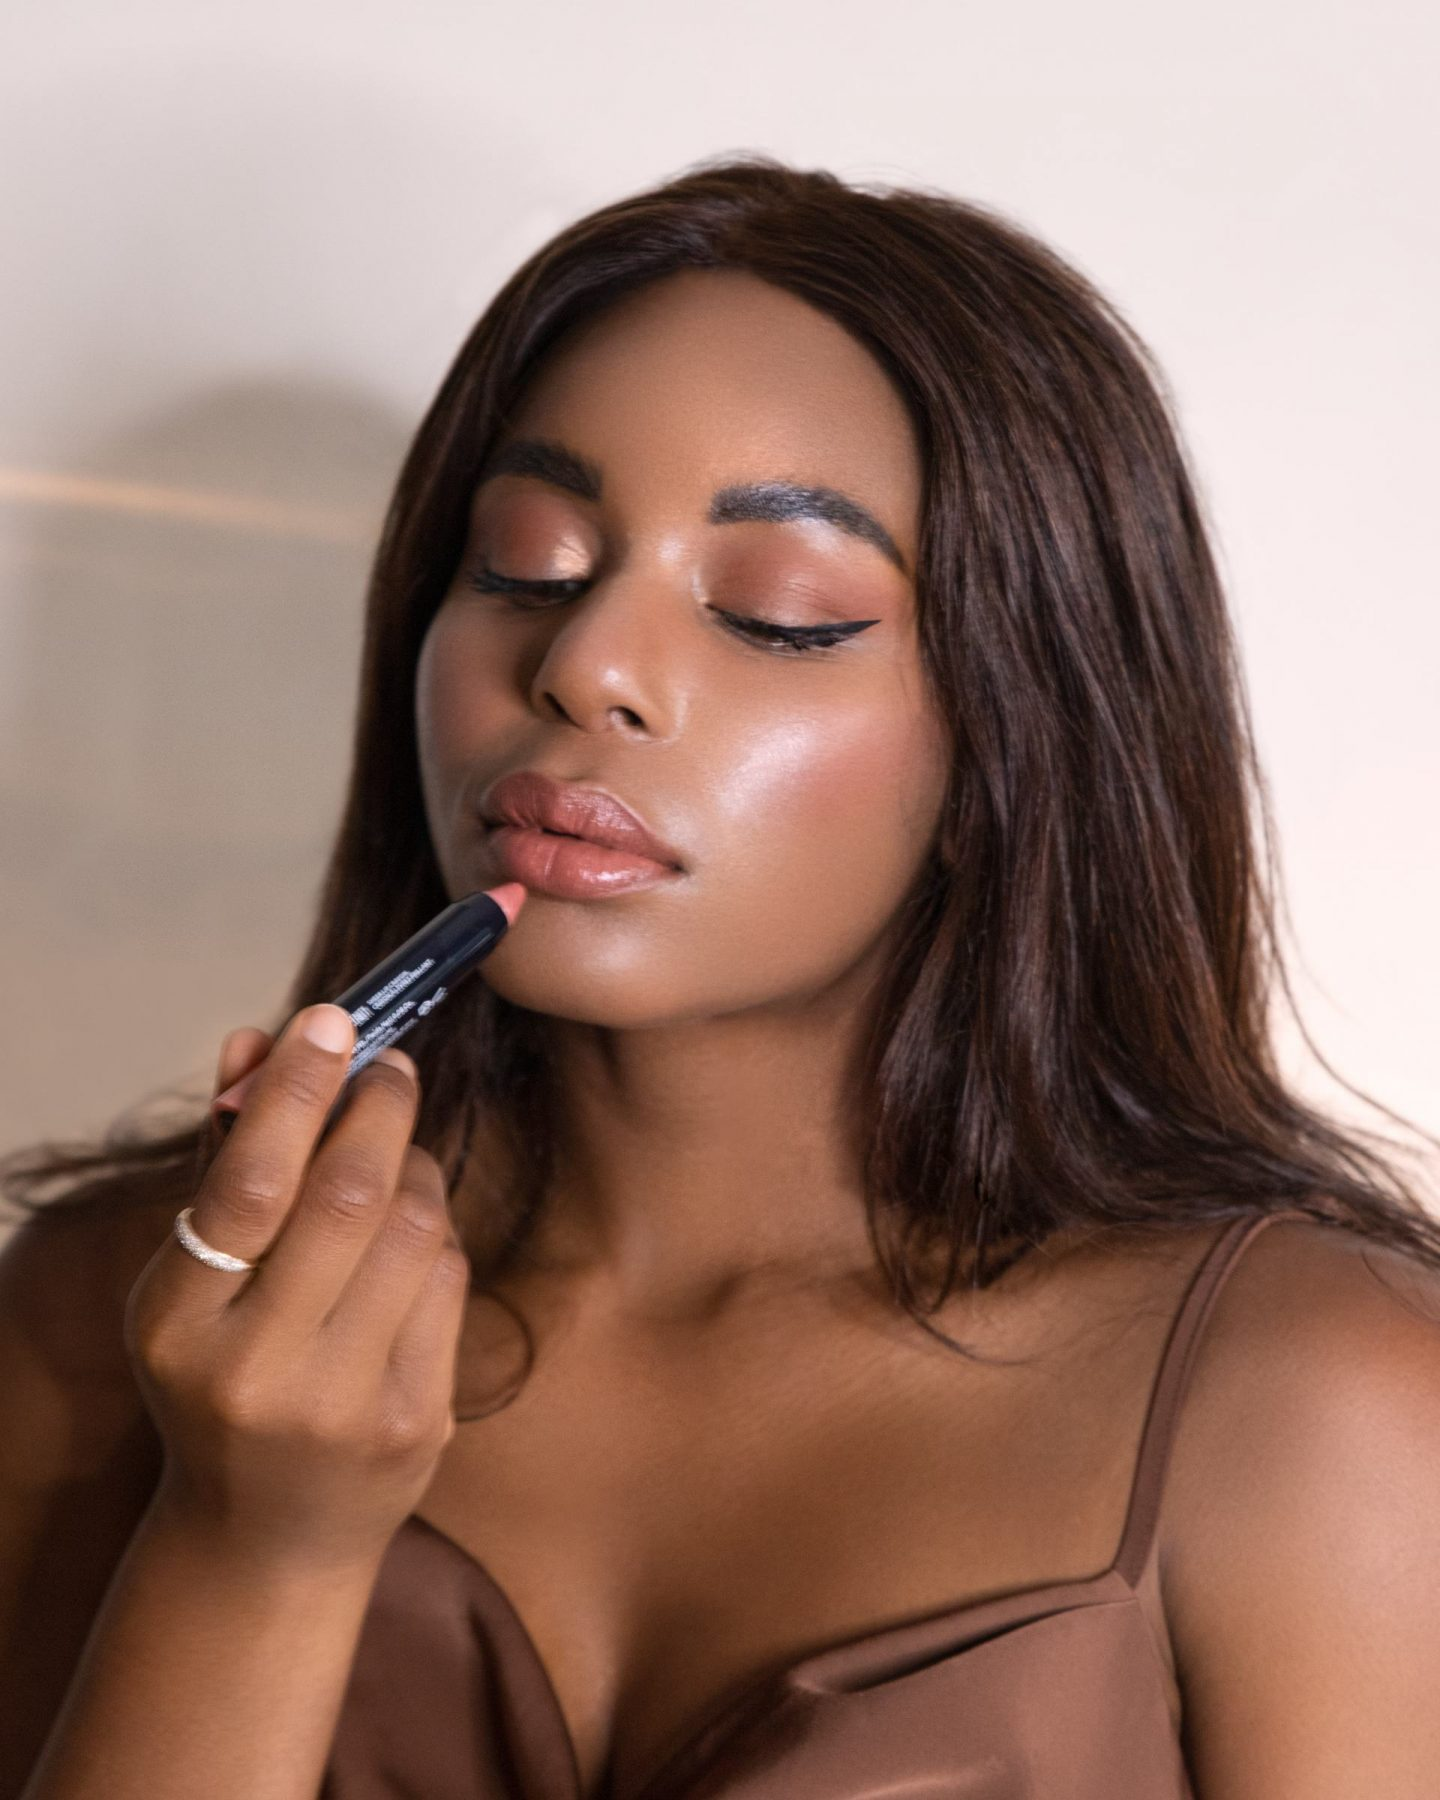 One Click Beauty Perfect Nudes beauty kit in collaboration with Kaye Bassey